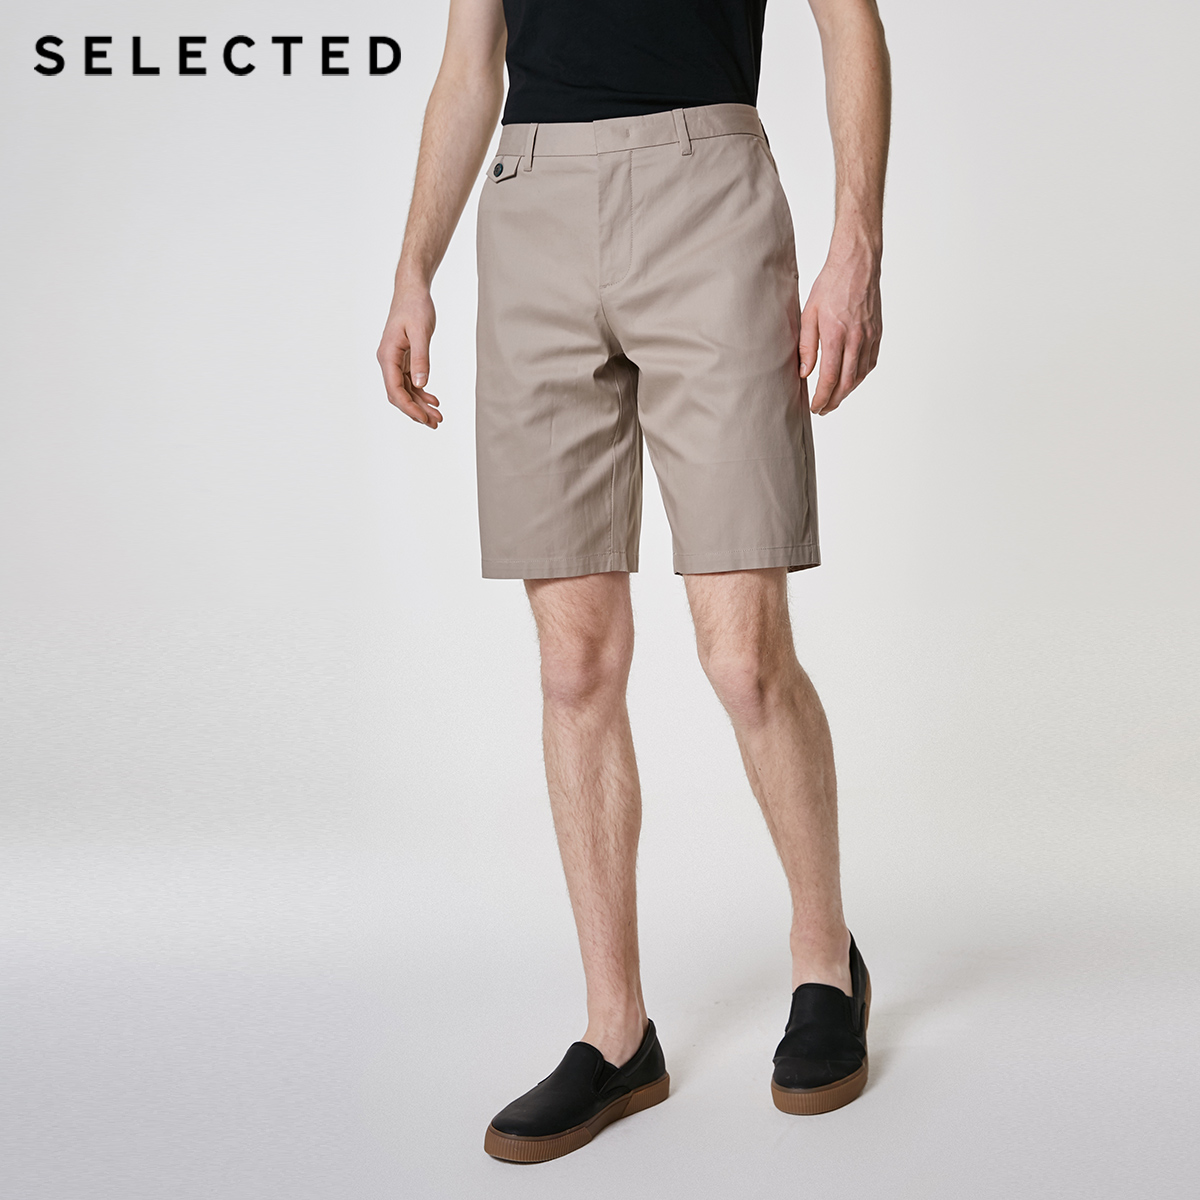 SELECTED Men's Summer 100% Cotton Straight Fit Shorts S|4192SH521